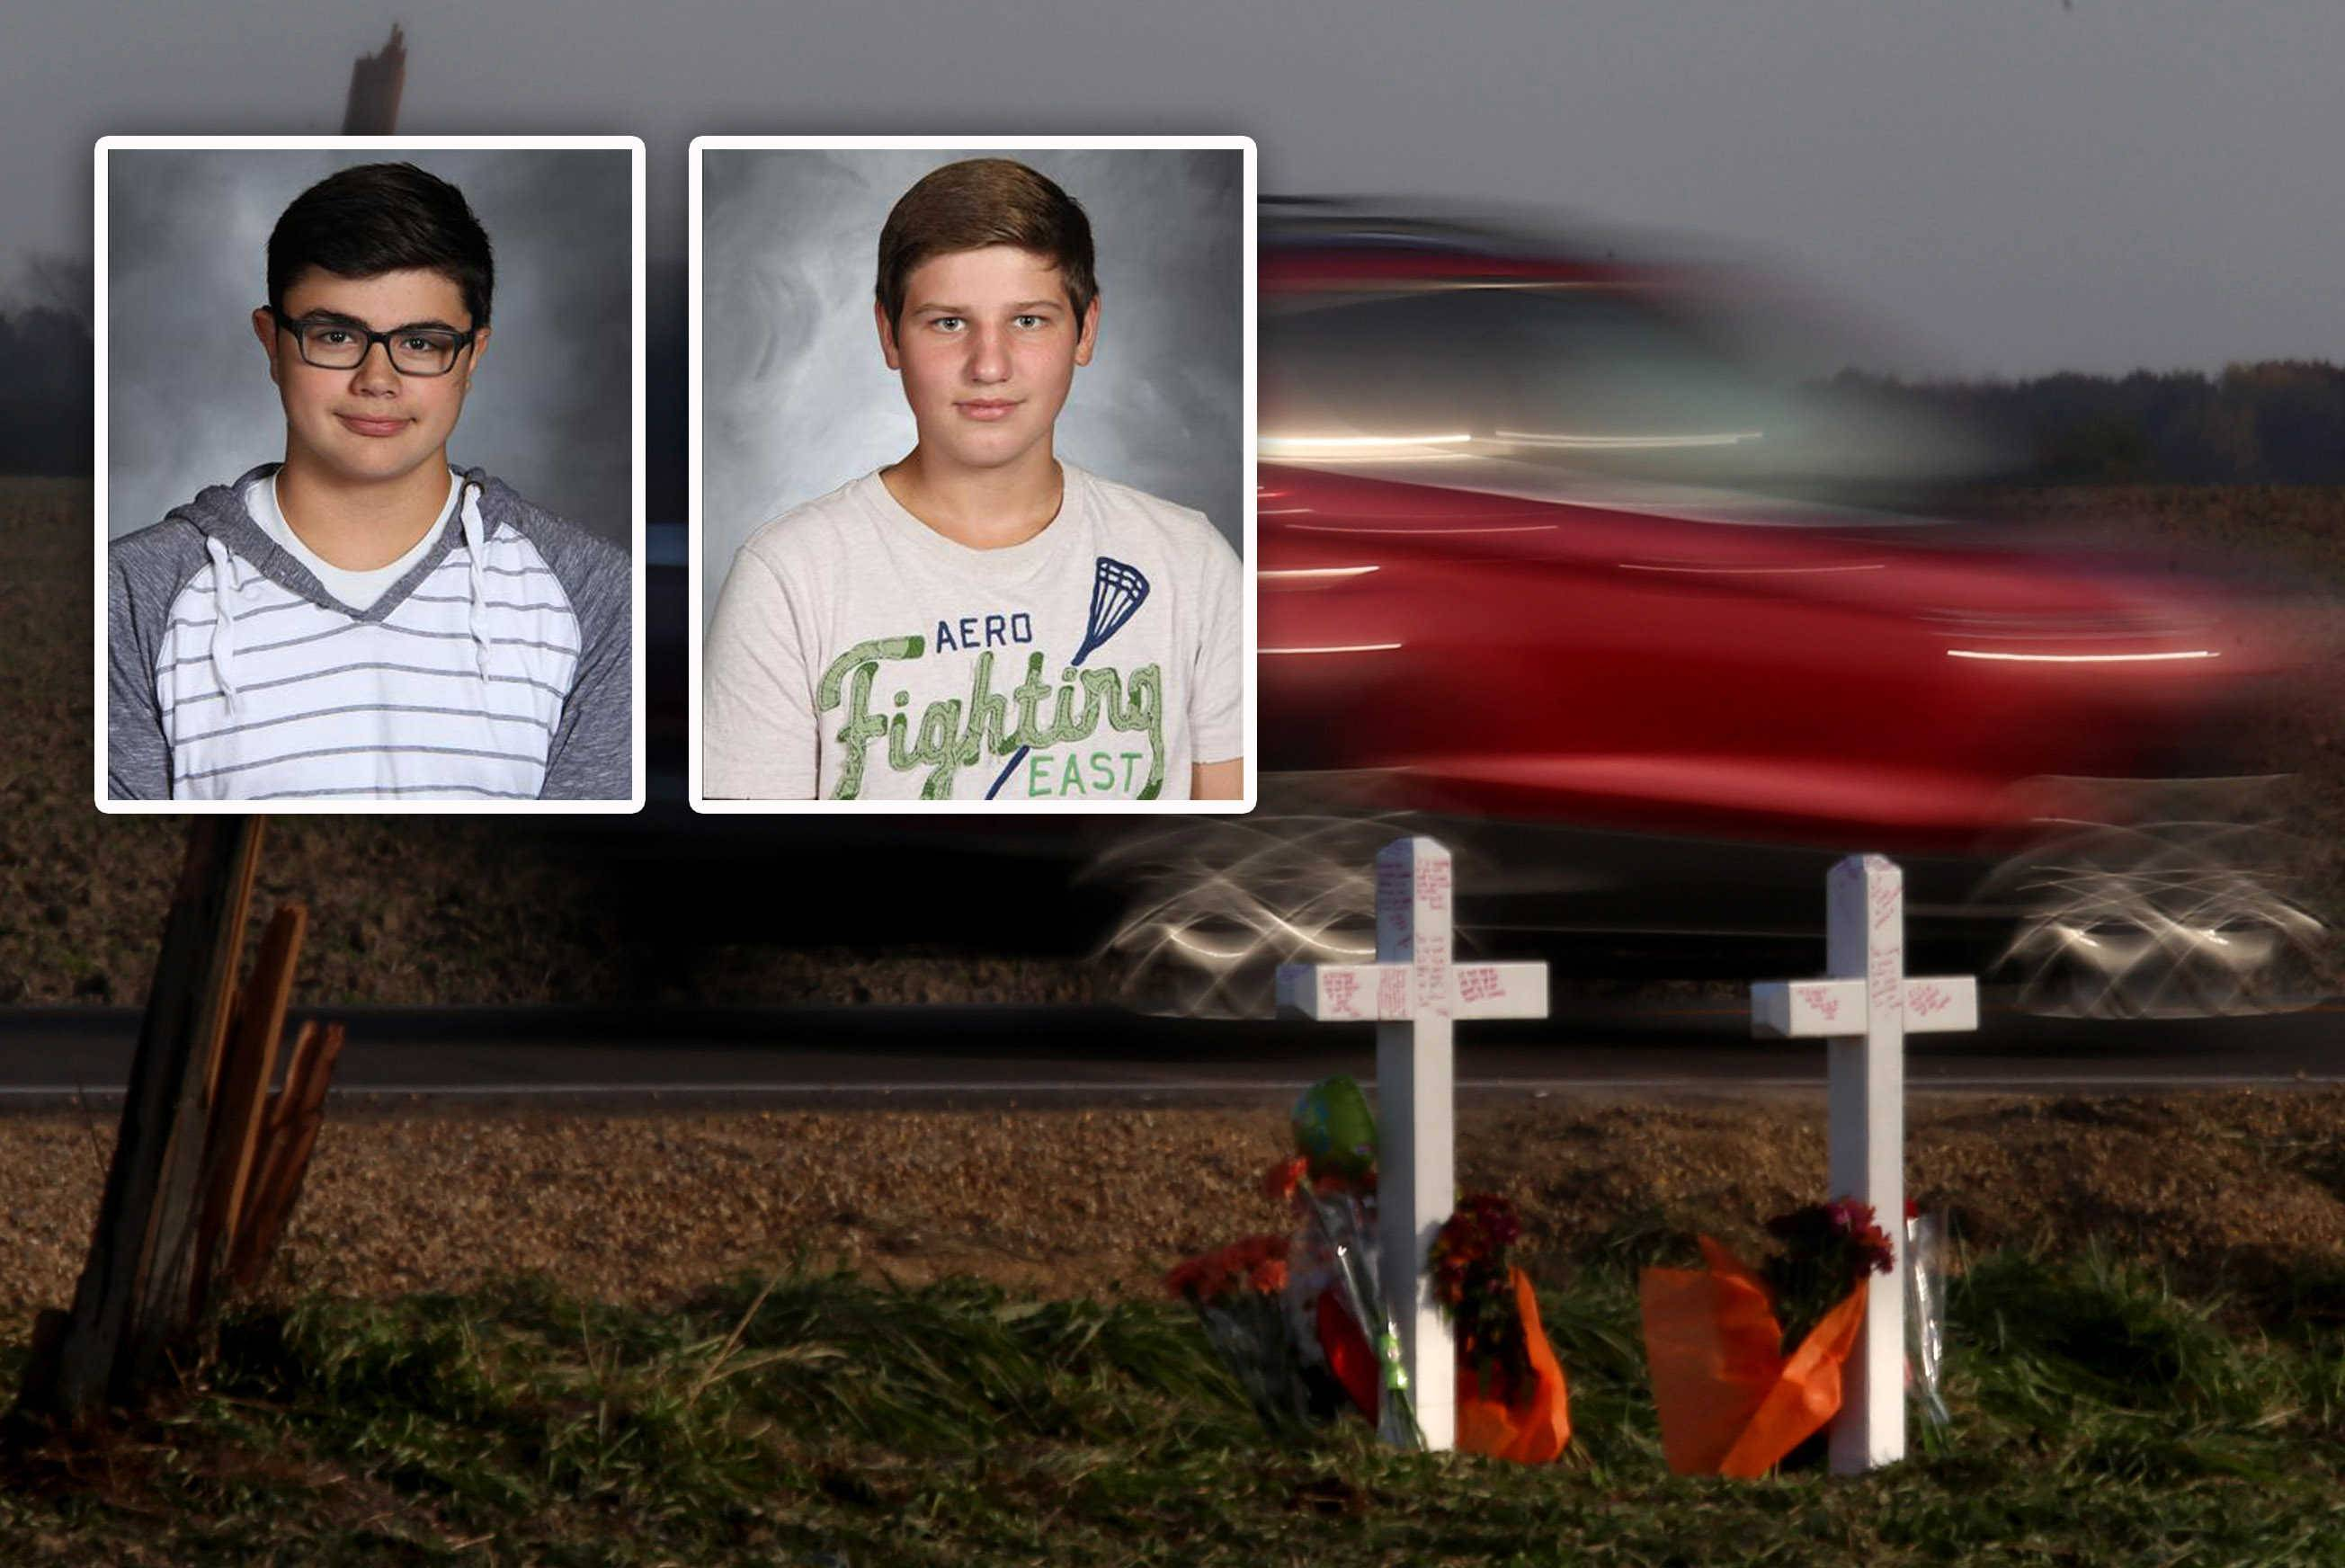 Crosses were erected at Meredith and Beith roads northwest of Elburn for two Kaneland High School juniors -- Arthur Stenger, left, 16, of Montgomery, and Elijah Vajgert, 16, of Maple Park. Vajgert's father is suing Stenger's estate for damages.